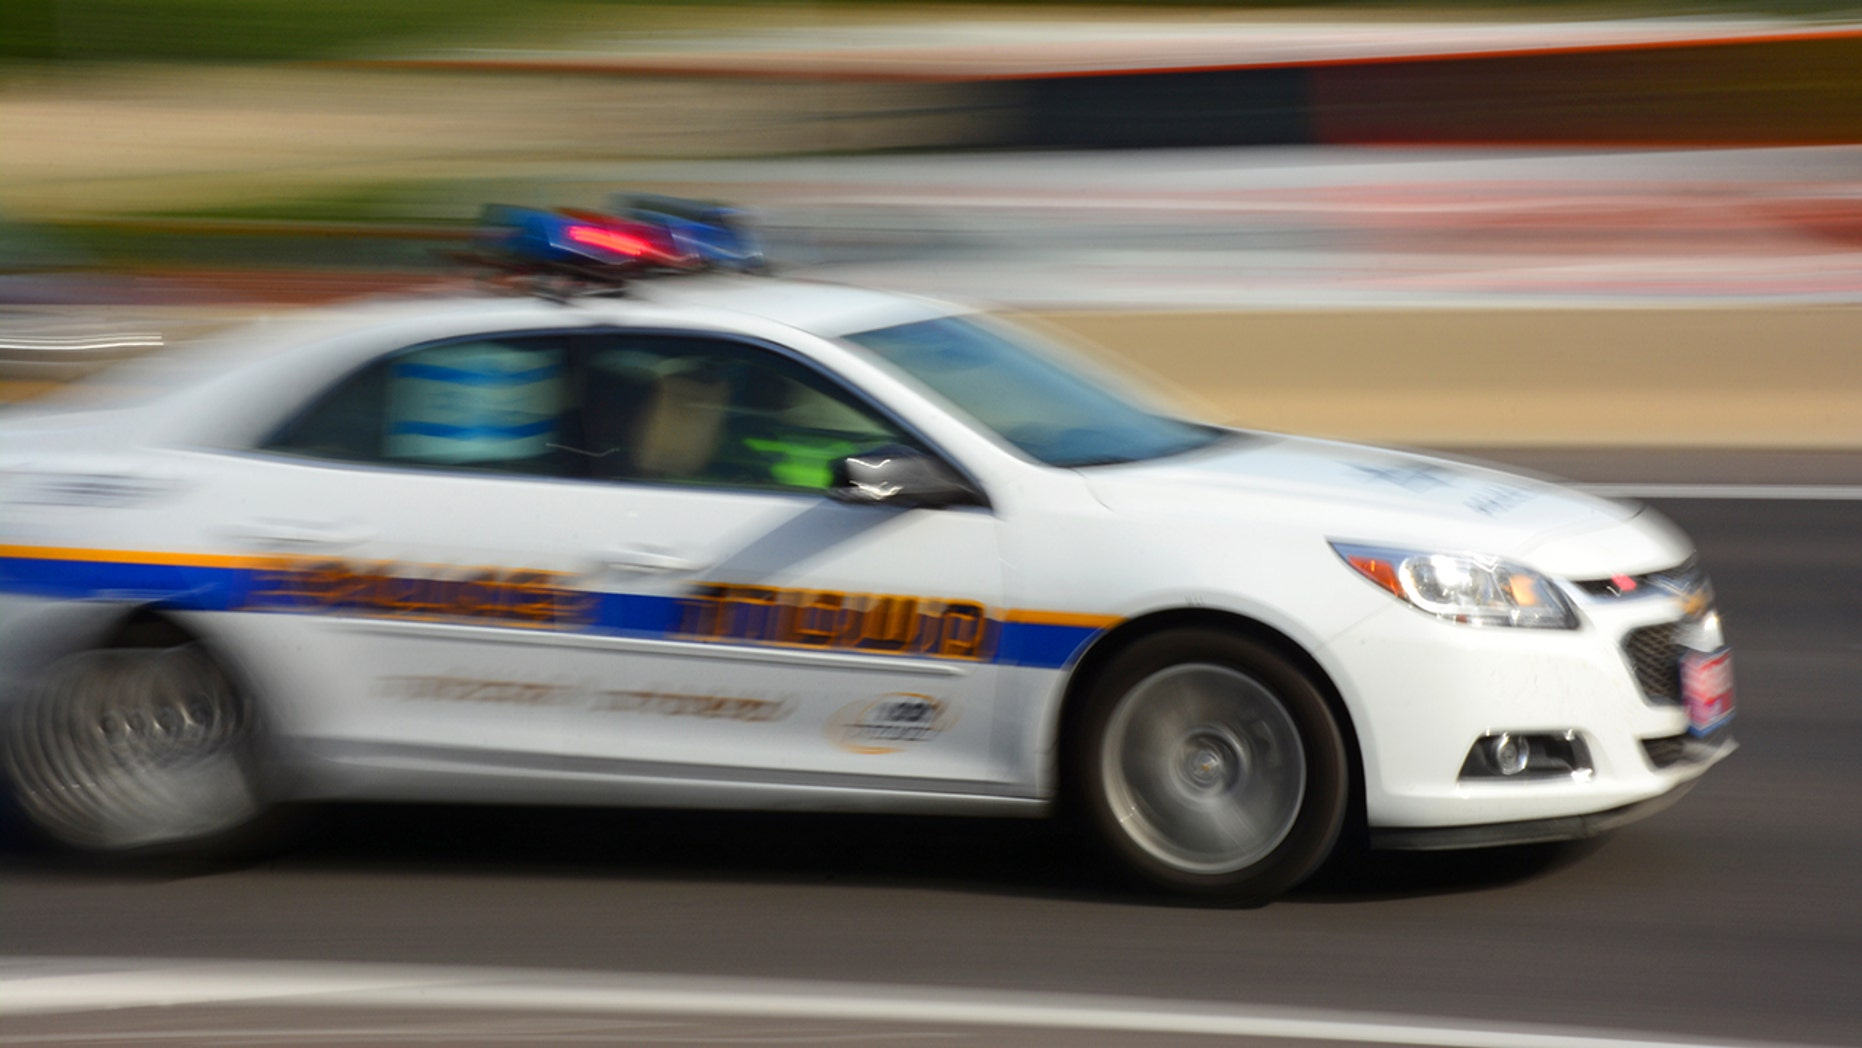 A teenager led police on a chase through Ada County, Idaho, before losing control of her vehicle.